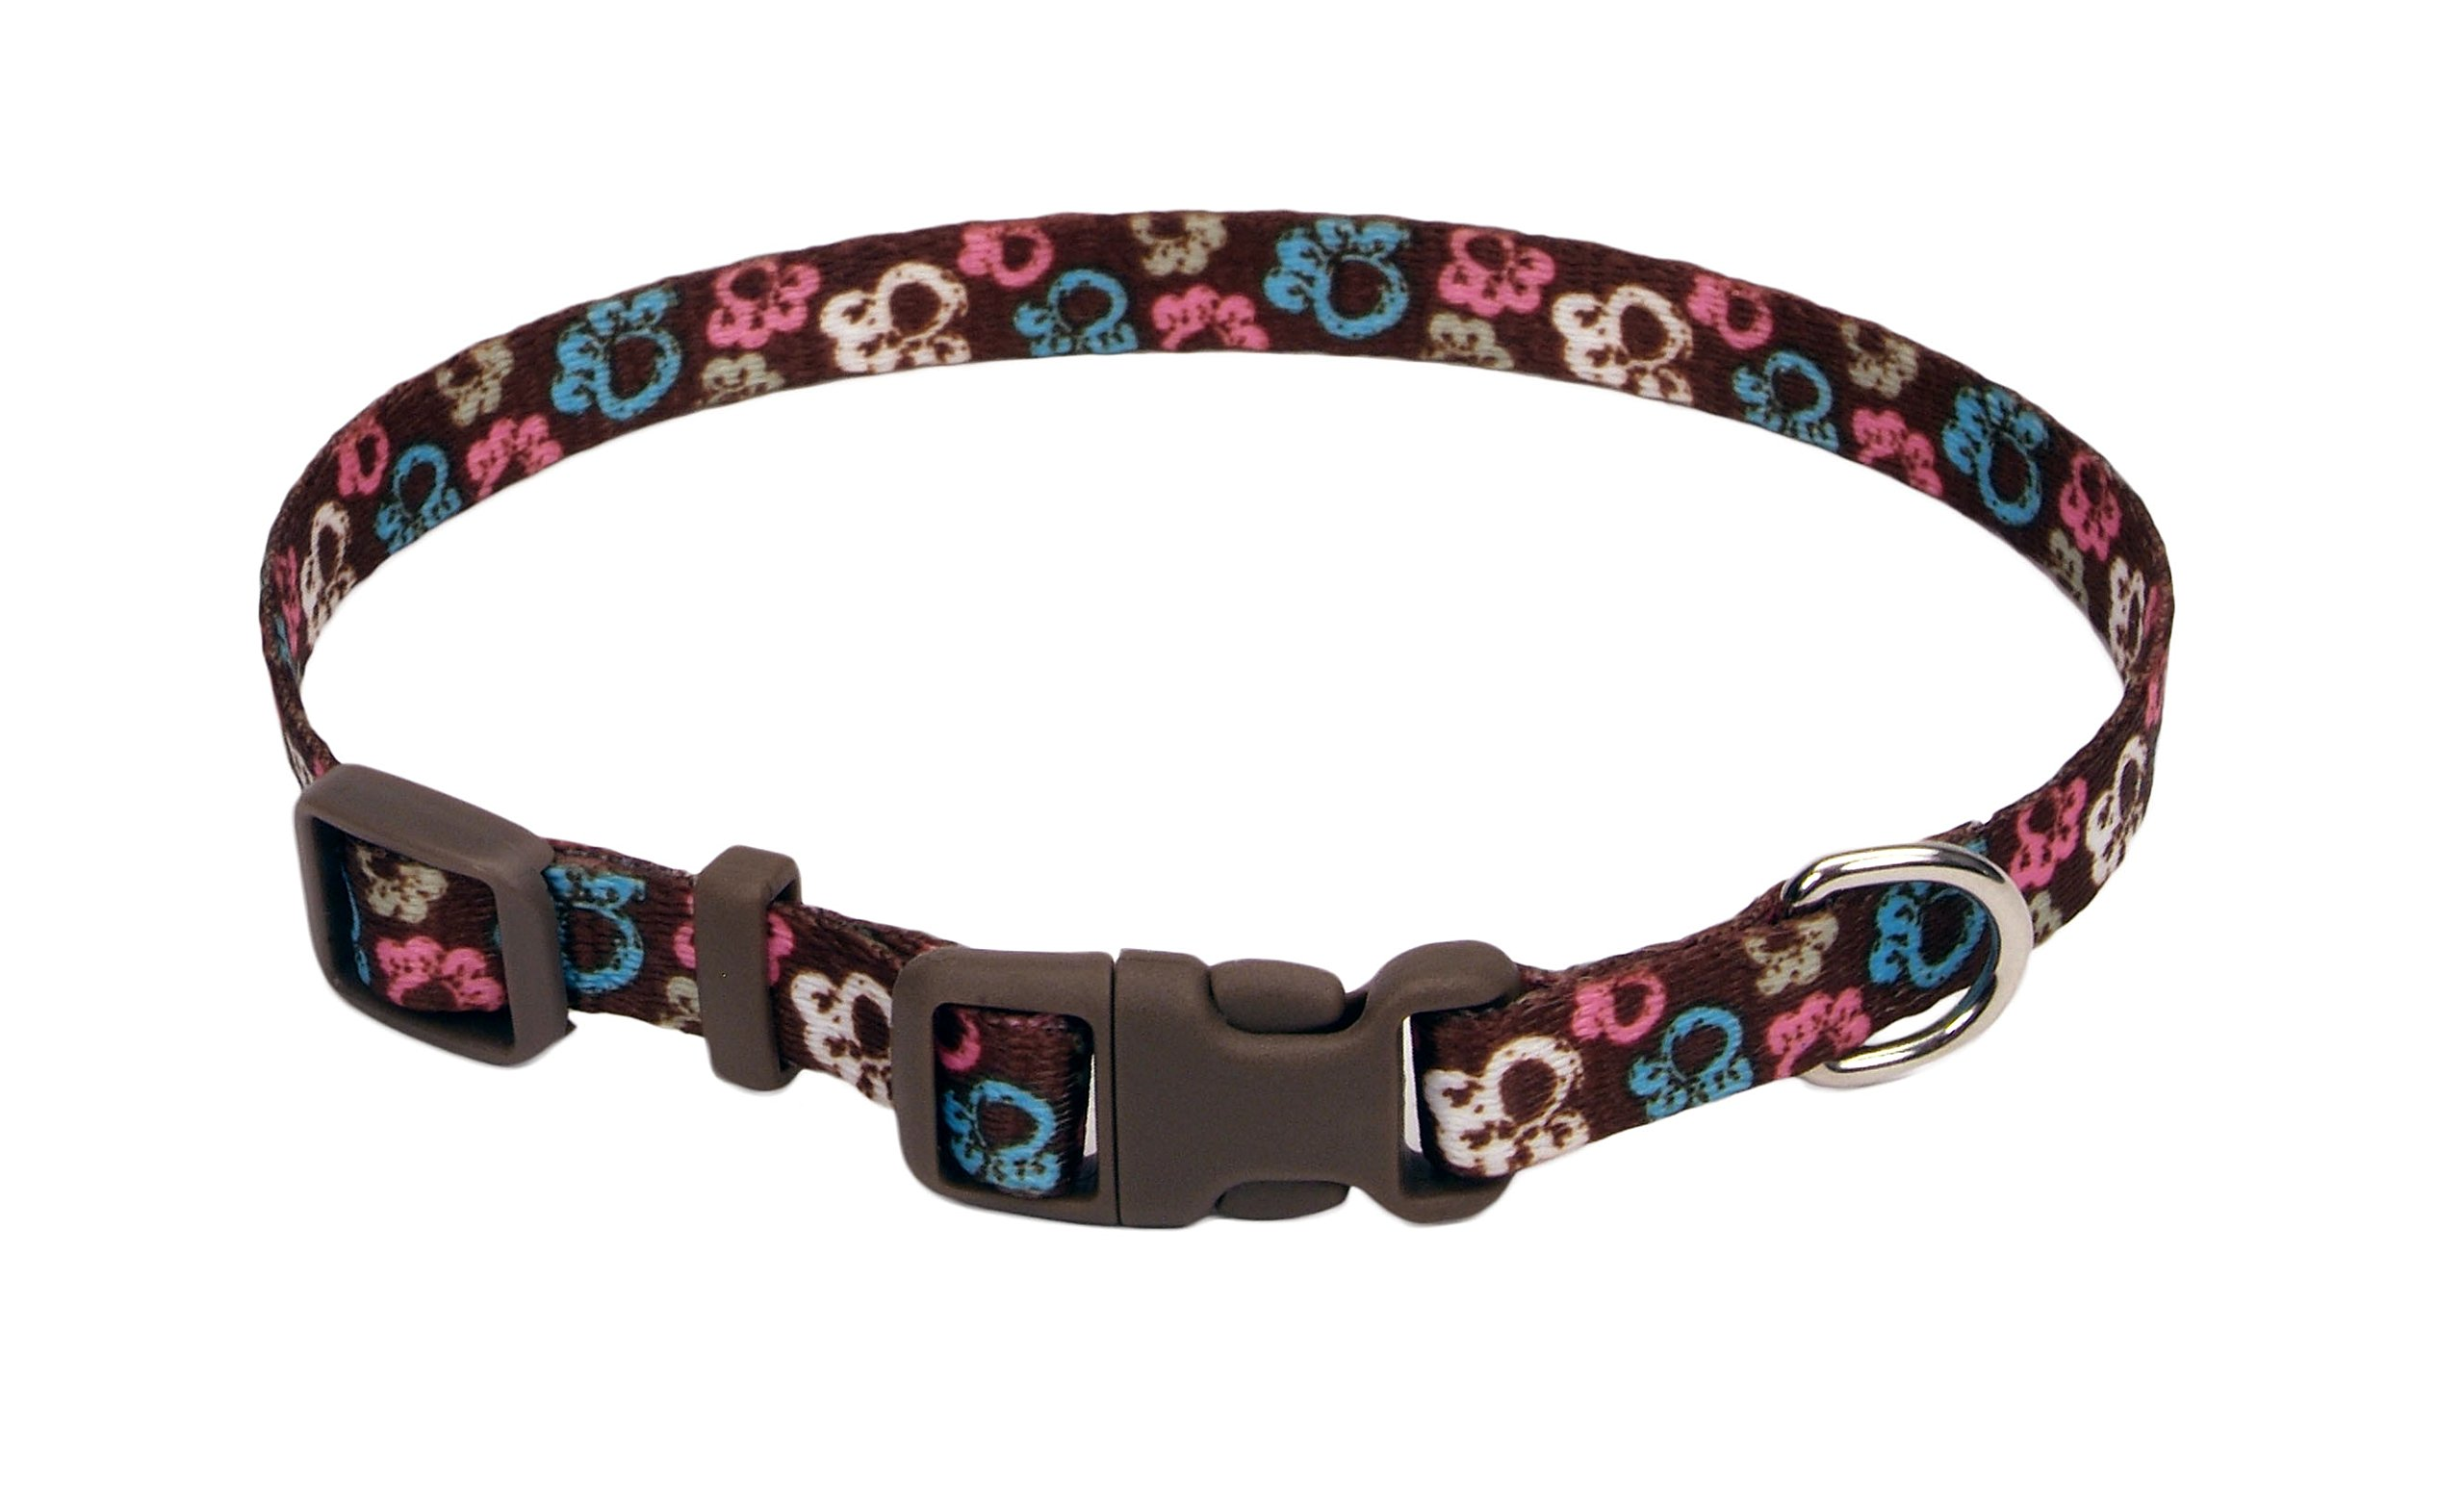 Coastal Pet Products 06321 SPB12 Adjustable Dog Collar, 3/8'' x 8''-12''